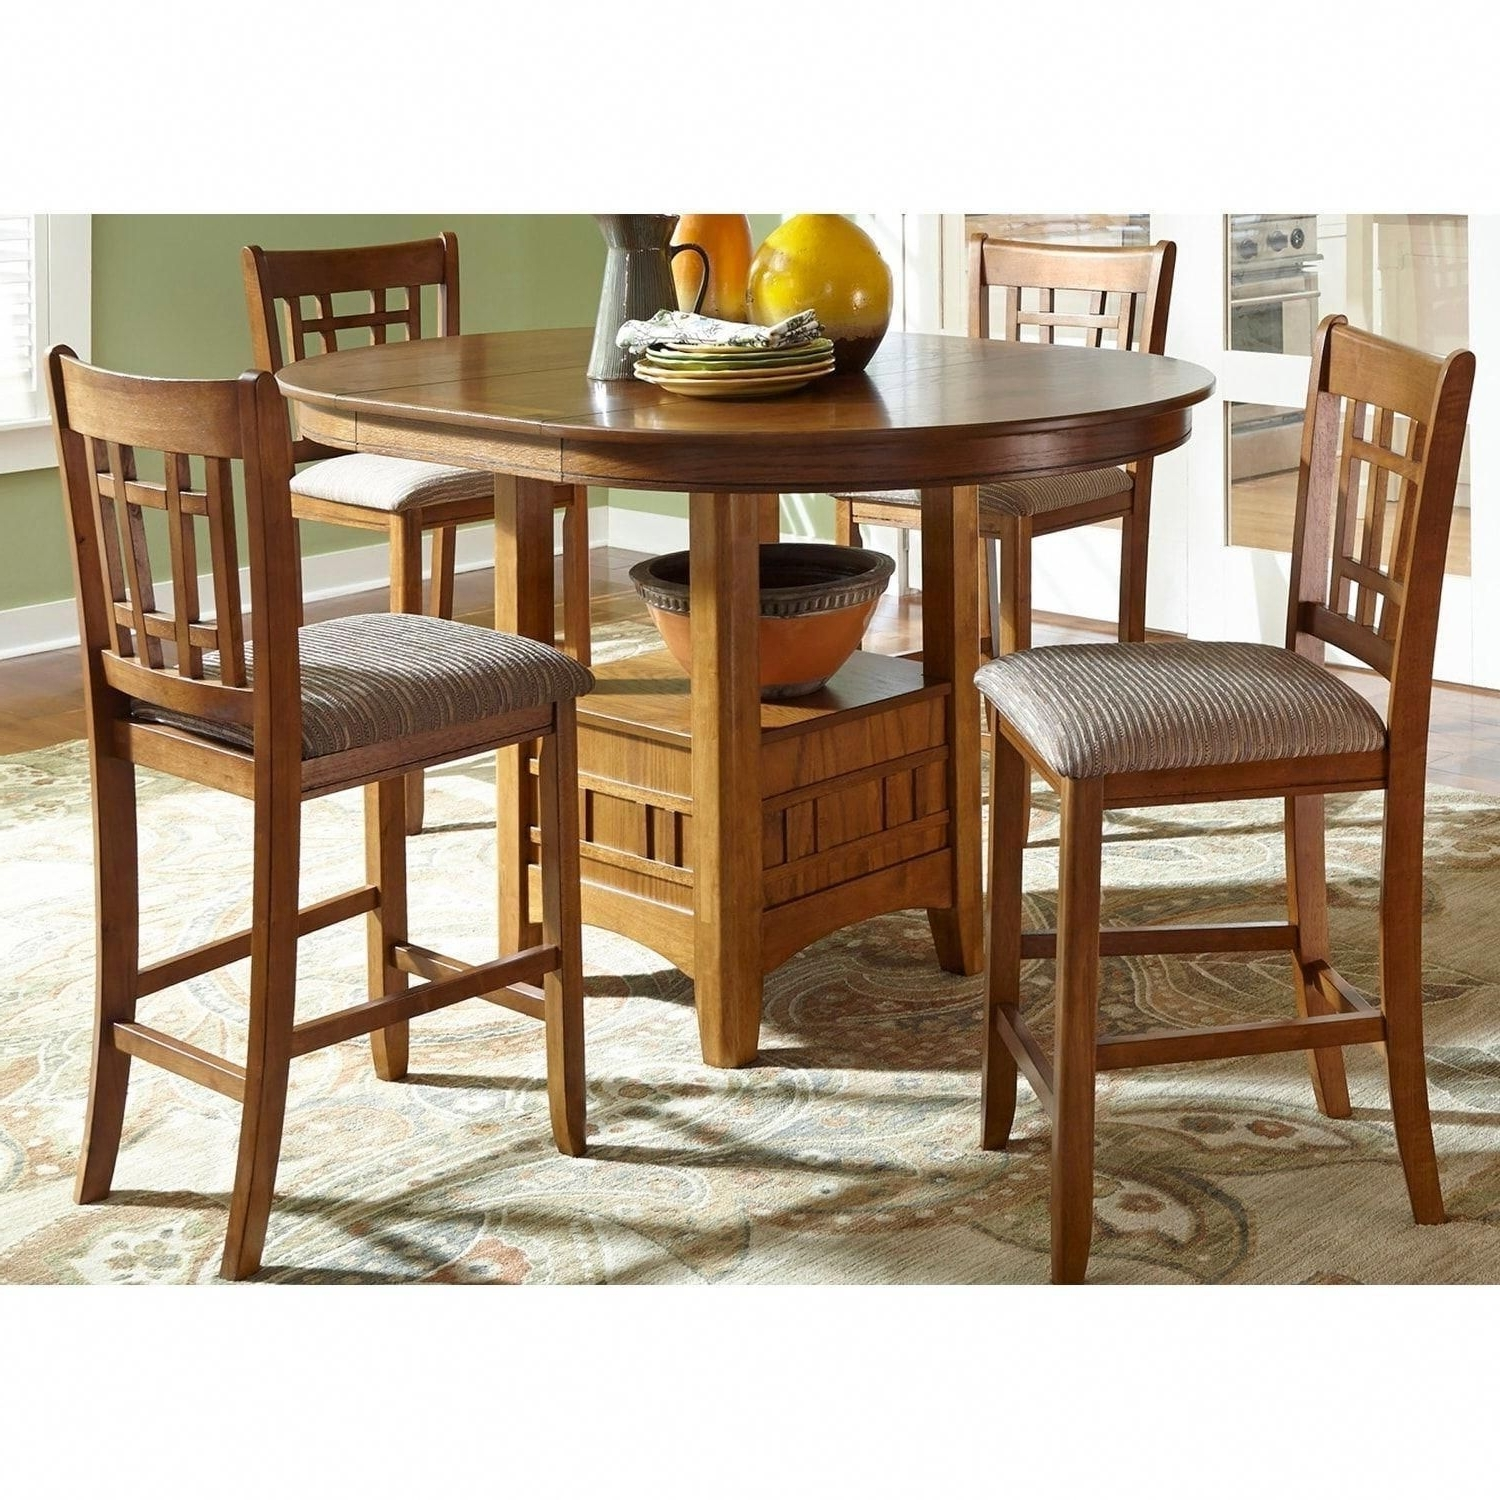 Liberty Santa Rosa Mission Oak Wood 5 Piece Counter Height Pub Set Pertaining To Preferred Craftsman 9 Piece Extension Dining Sets With Uph Side Chairs (View 12 of 25)